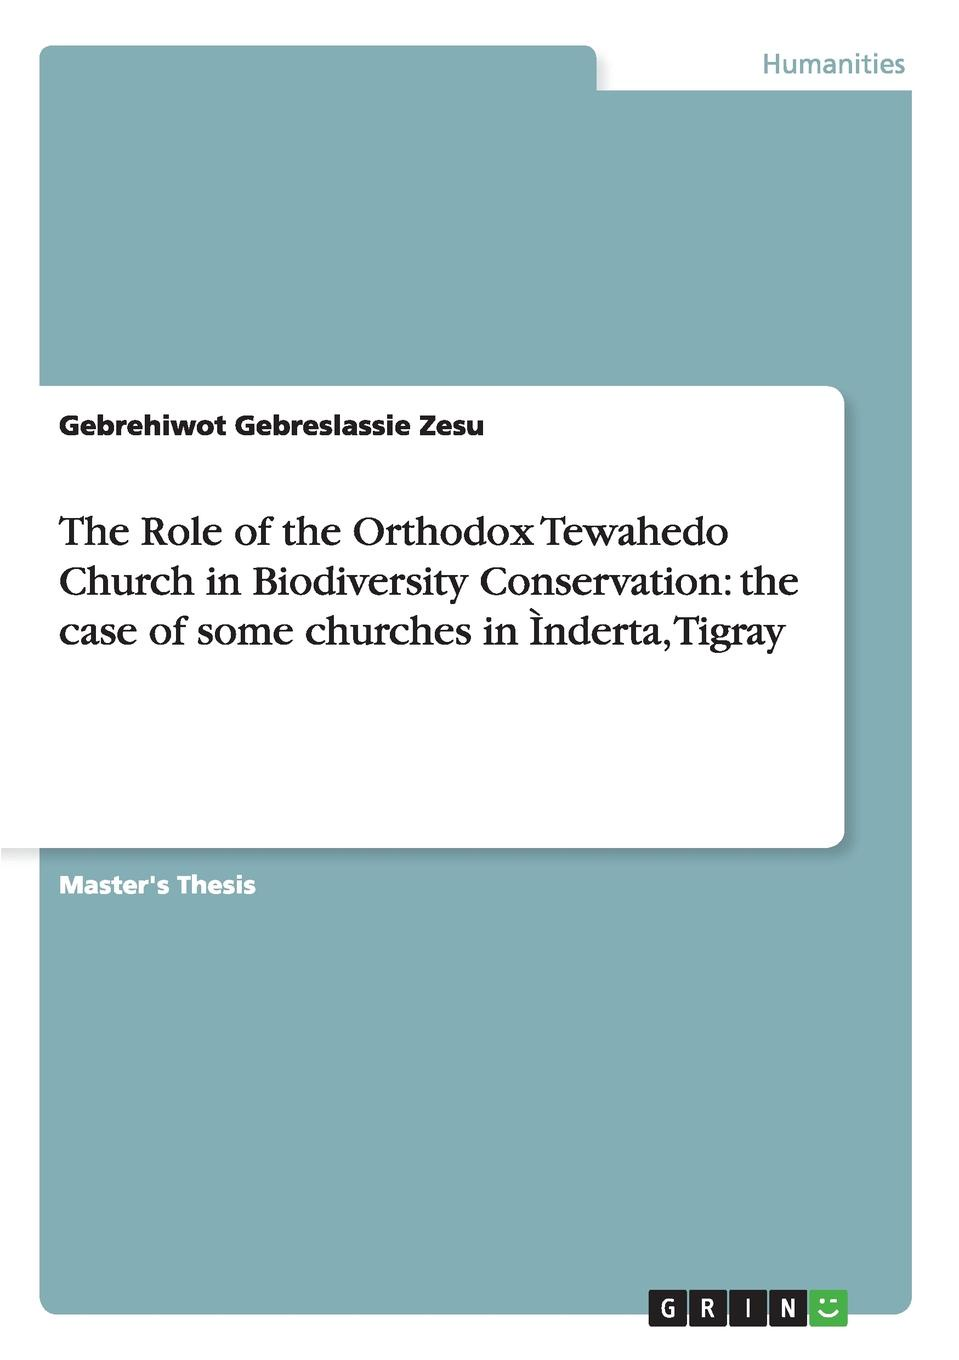 Gebrehiwot Gebreslassie Zesu The Role of the Orthodox Tewahedo Church in Biodiversity Conservation. the case of some churches in Inderta, Tigray dilys roe biodiversity conservation and poverty alleviation exploring the evidence for a link